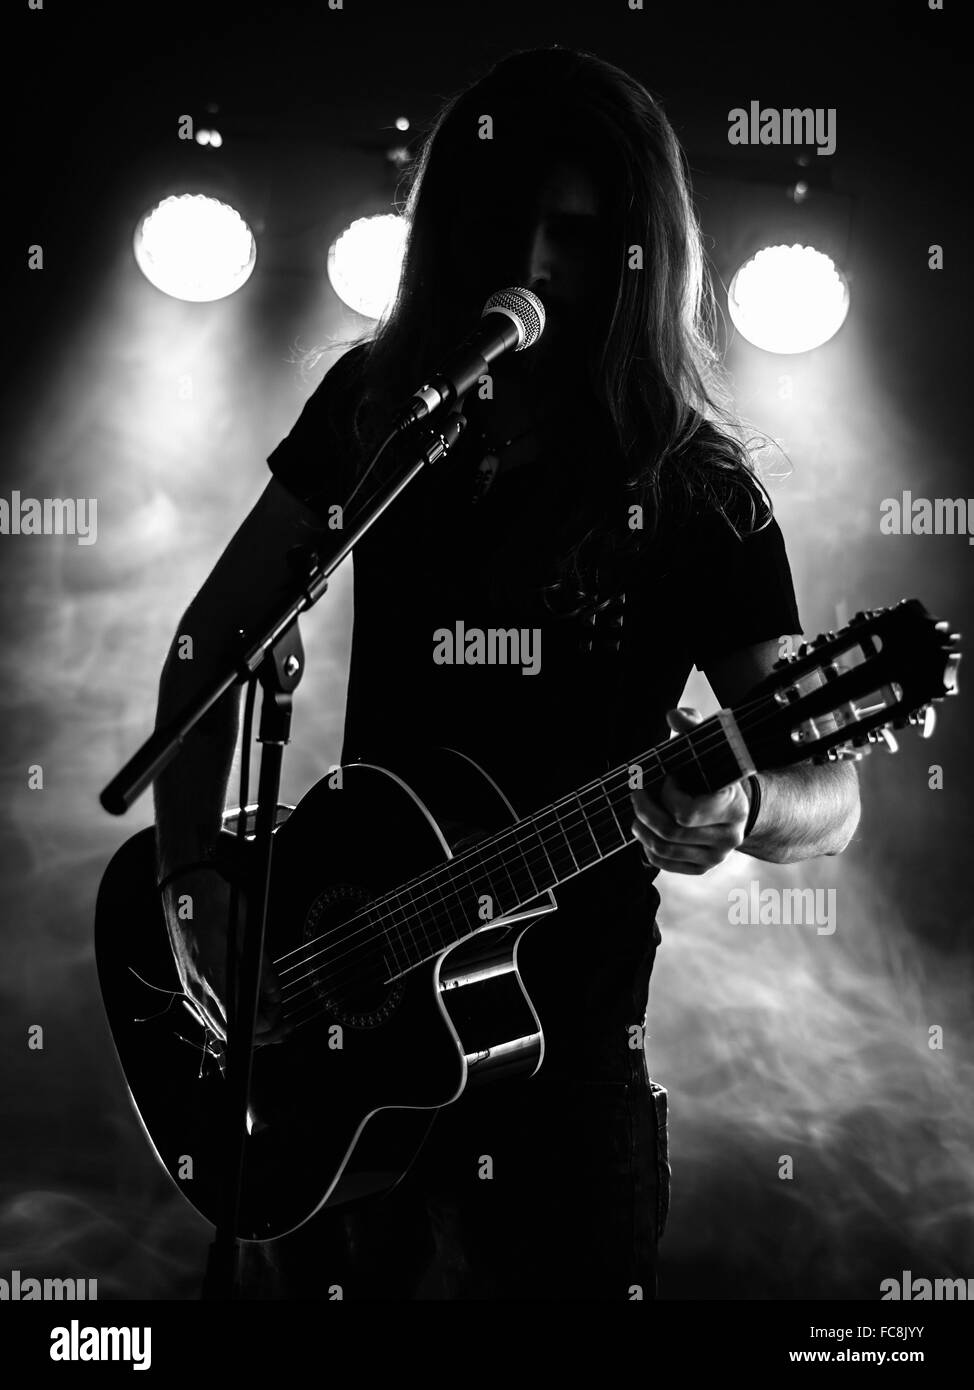 Photo of a backlit young man with long hair in silhouette playing an acoustic guitar on stage. - Stock Image